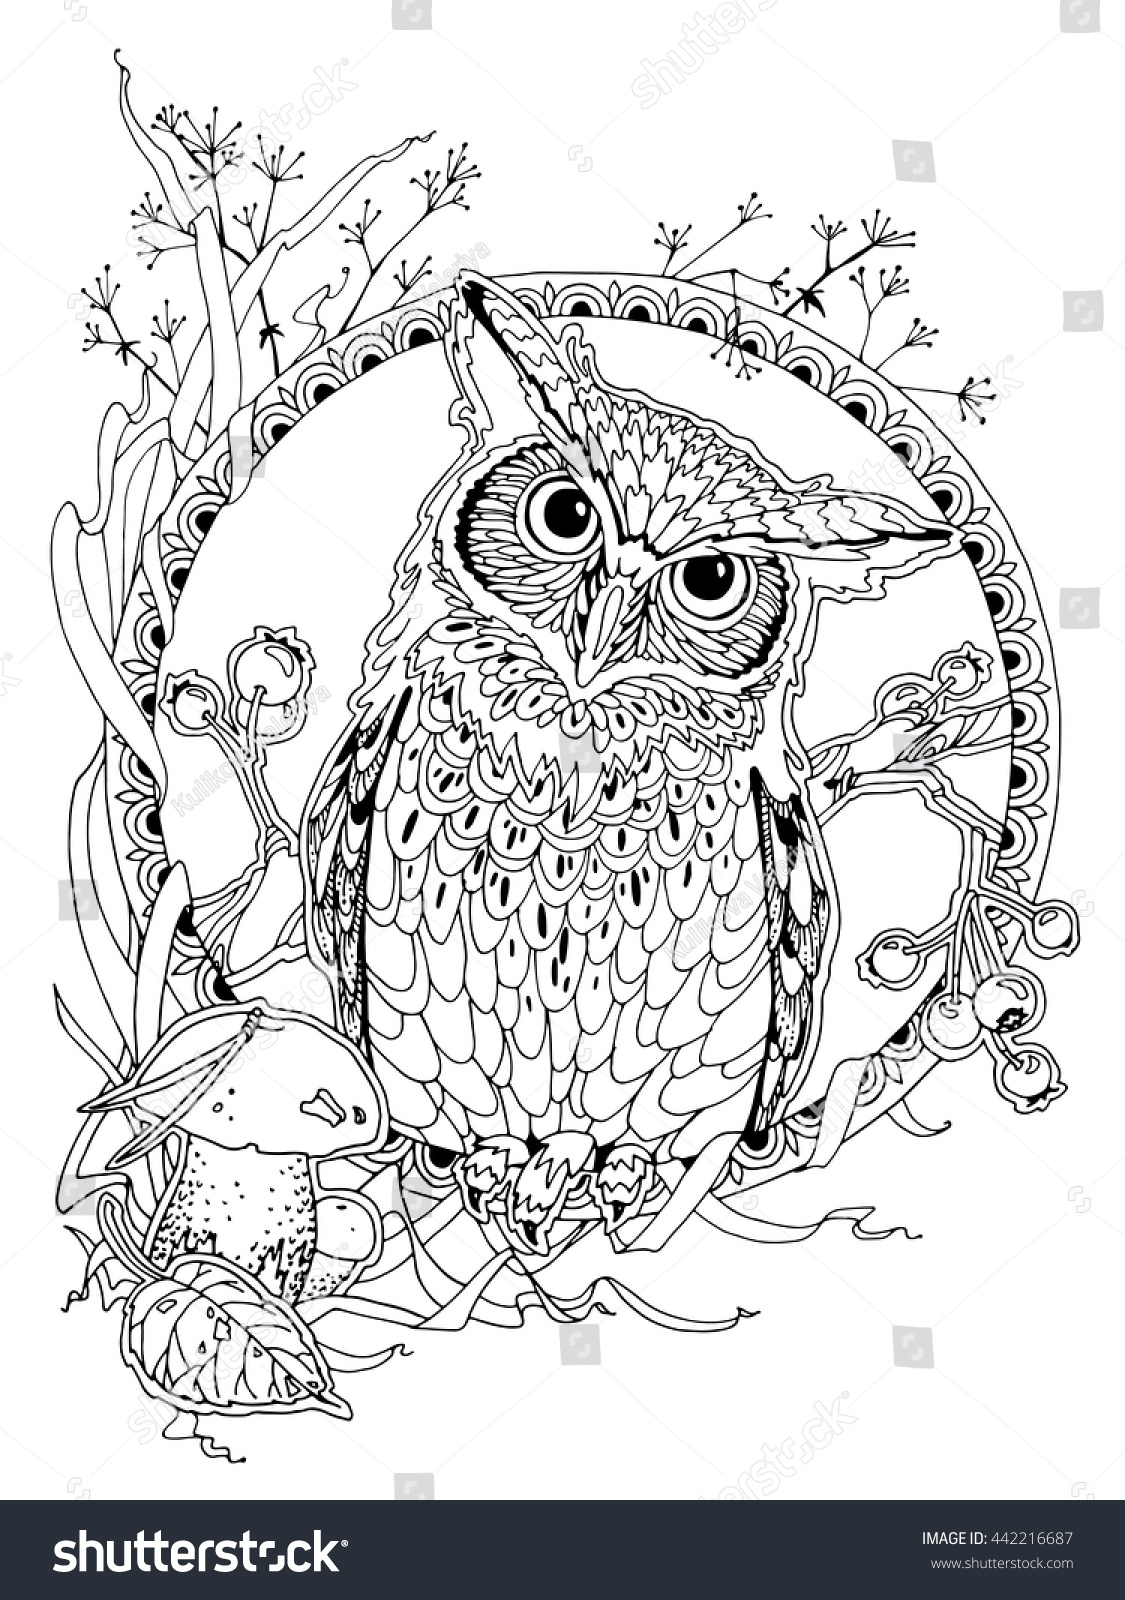 coloring page adults owl forest elements stock vector 442216687